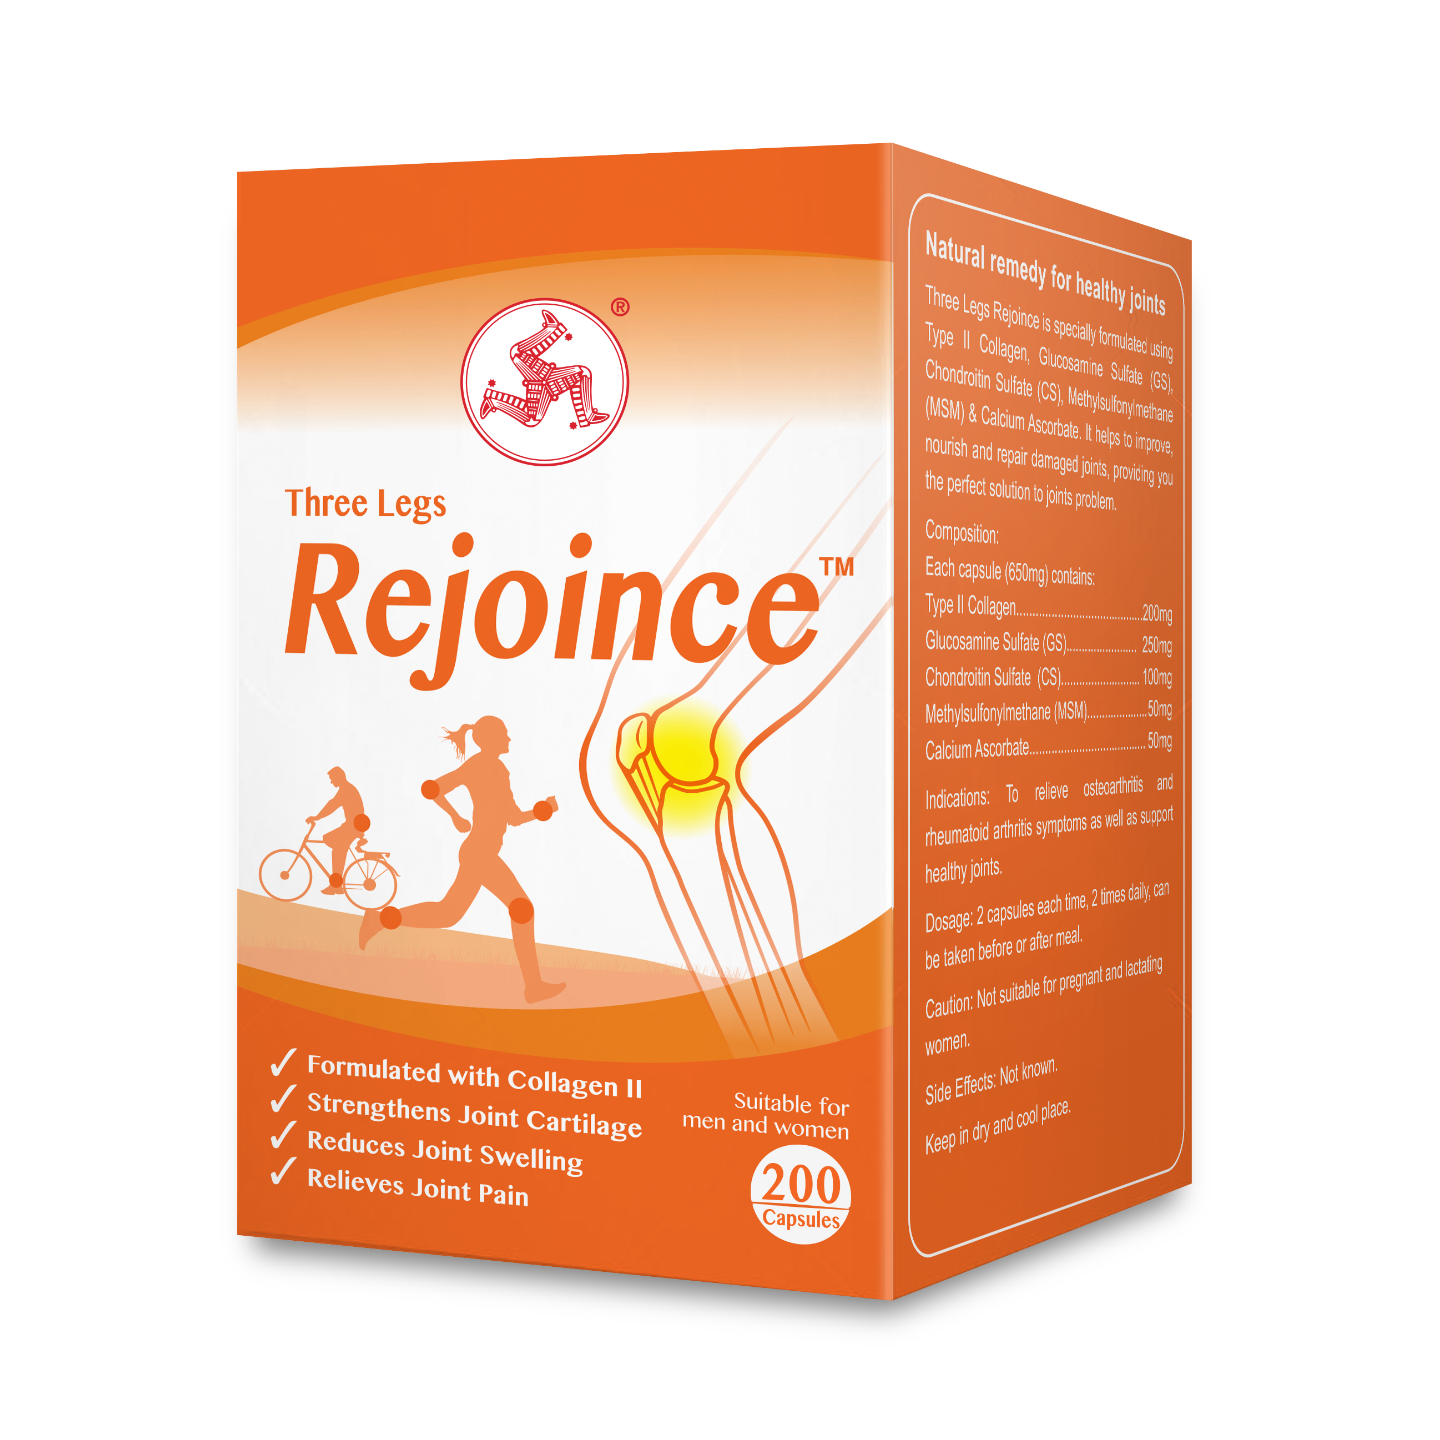 Rejoince Available in 60 or 200 capsules